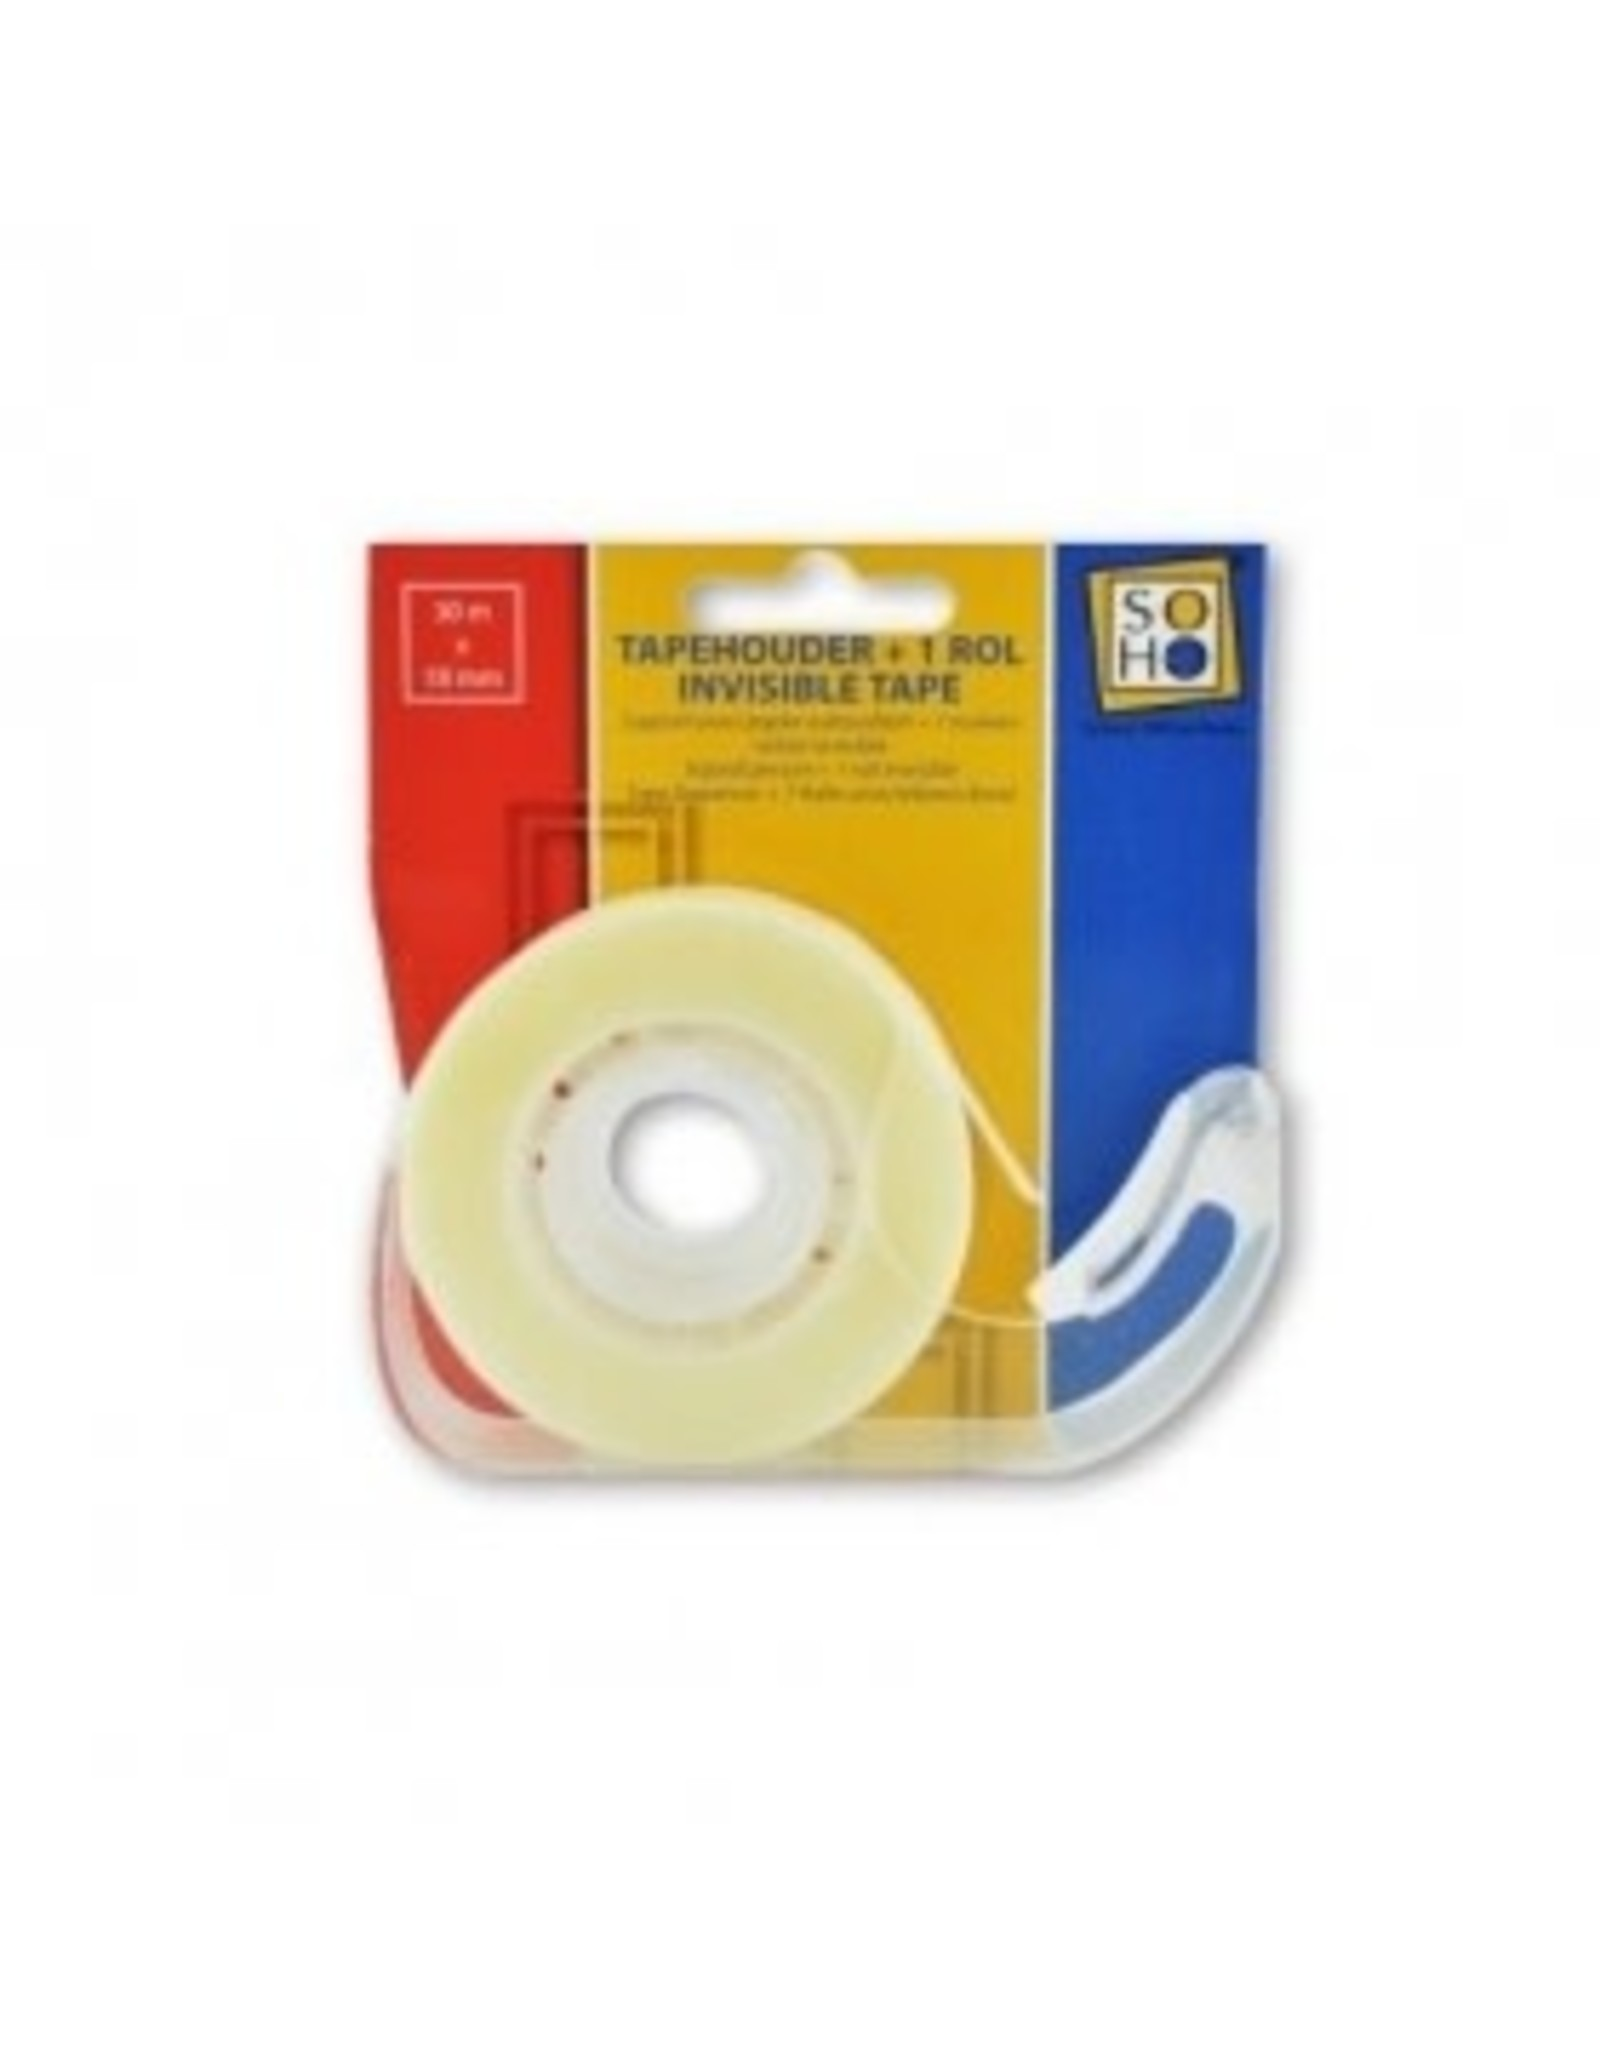 SOHO apehouder met rol Invisible tape 18mmx30m